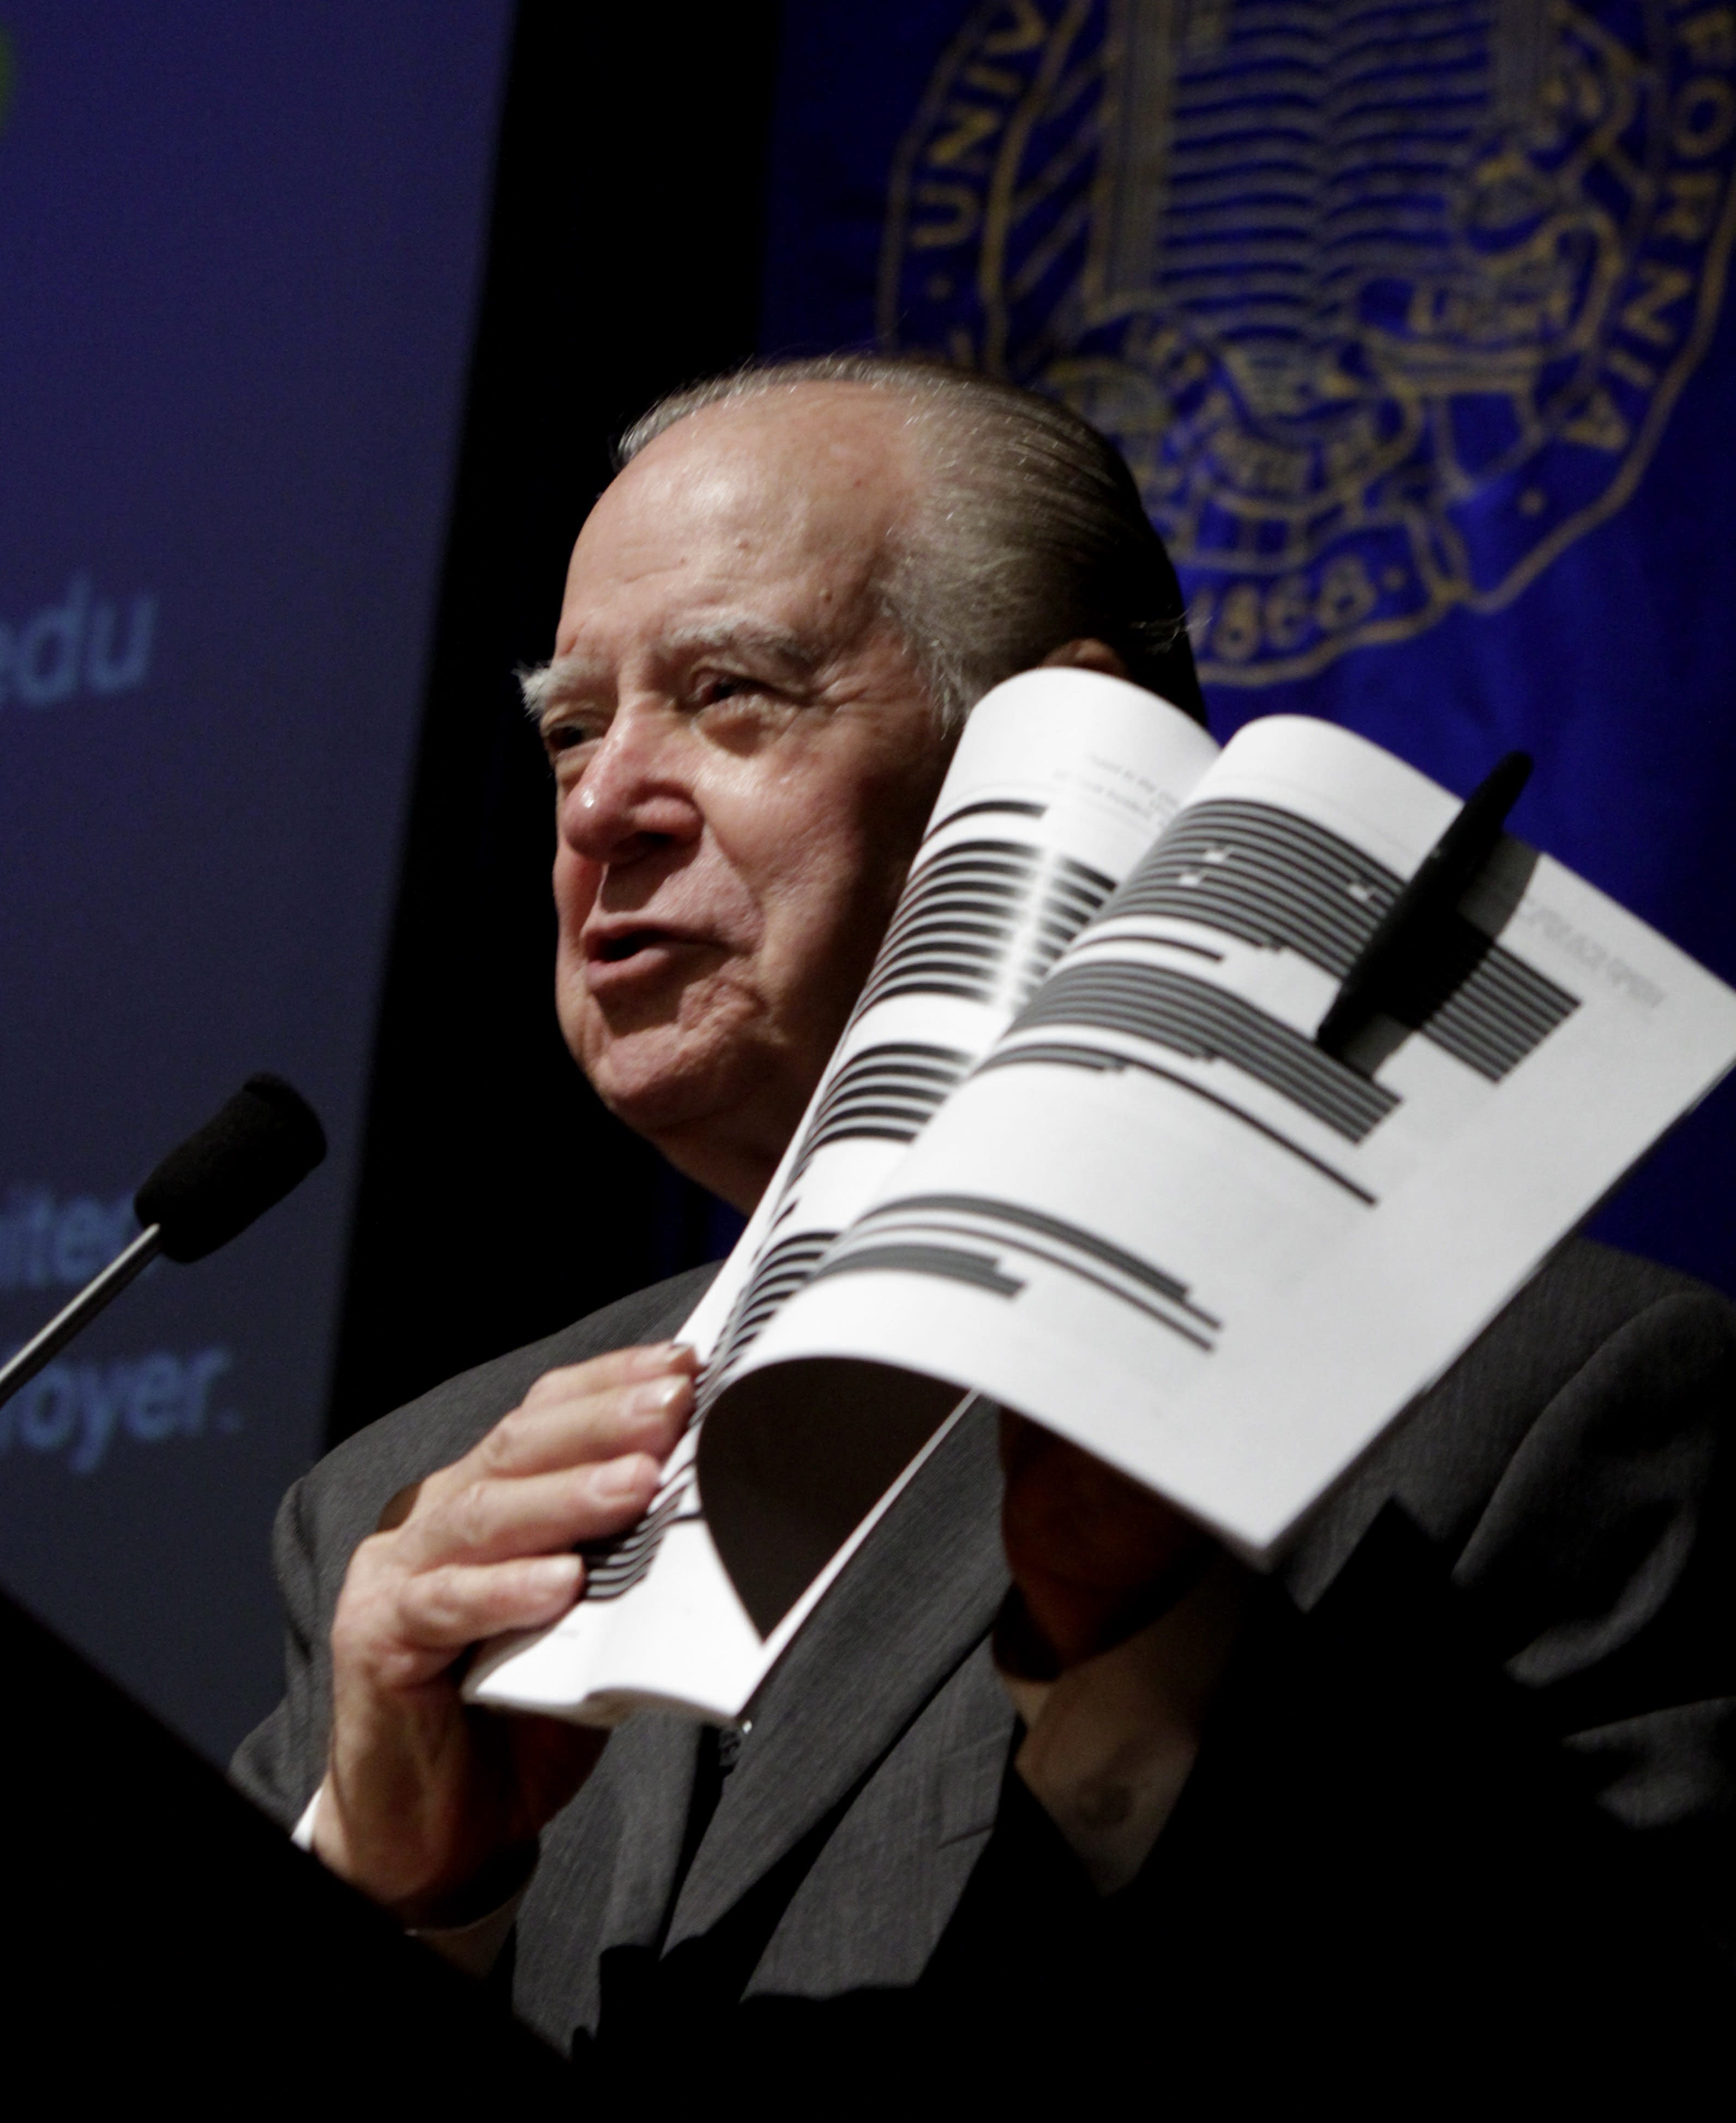 Retired California Supreme Court Justice Cruz Reynoso, who led a 13 member task force looking into the pepper spraying incident that occurred at the University of California, Davis last November, holds up an early copy of the report during a town hall style meeting held at the campus in Davis, Calif., Wednesday, April 11, 2012. The report was originally set for release March 6, but lawyers for the law enforcement officers involved wanted more than 60 percent of the document blacked out claiming it contained personnel records that should not be publicly released under state law. The final report was released with much of the information reinstated but without the names of most of the officers involved in the clash. (AP Photo/Rich Pedroncelli)